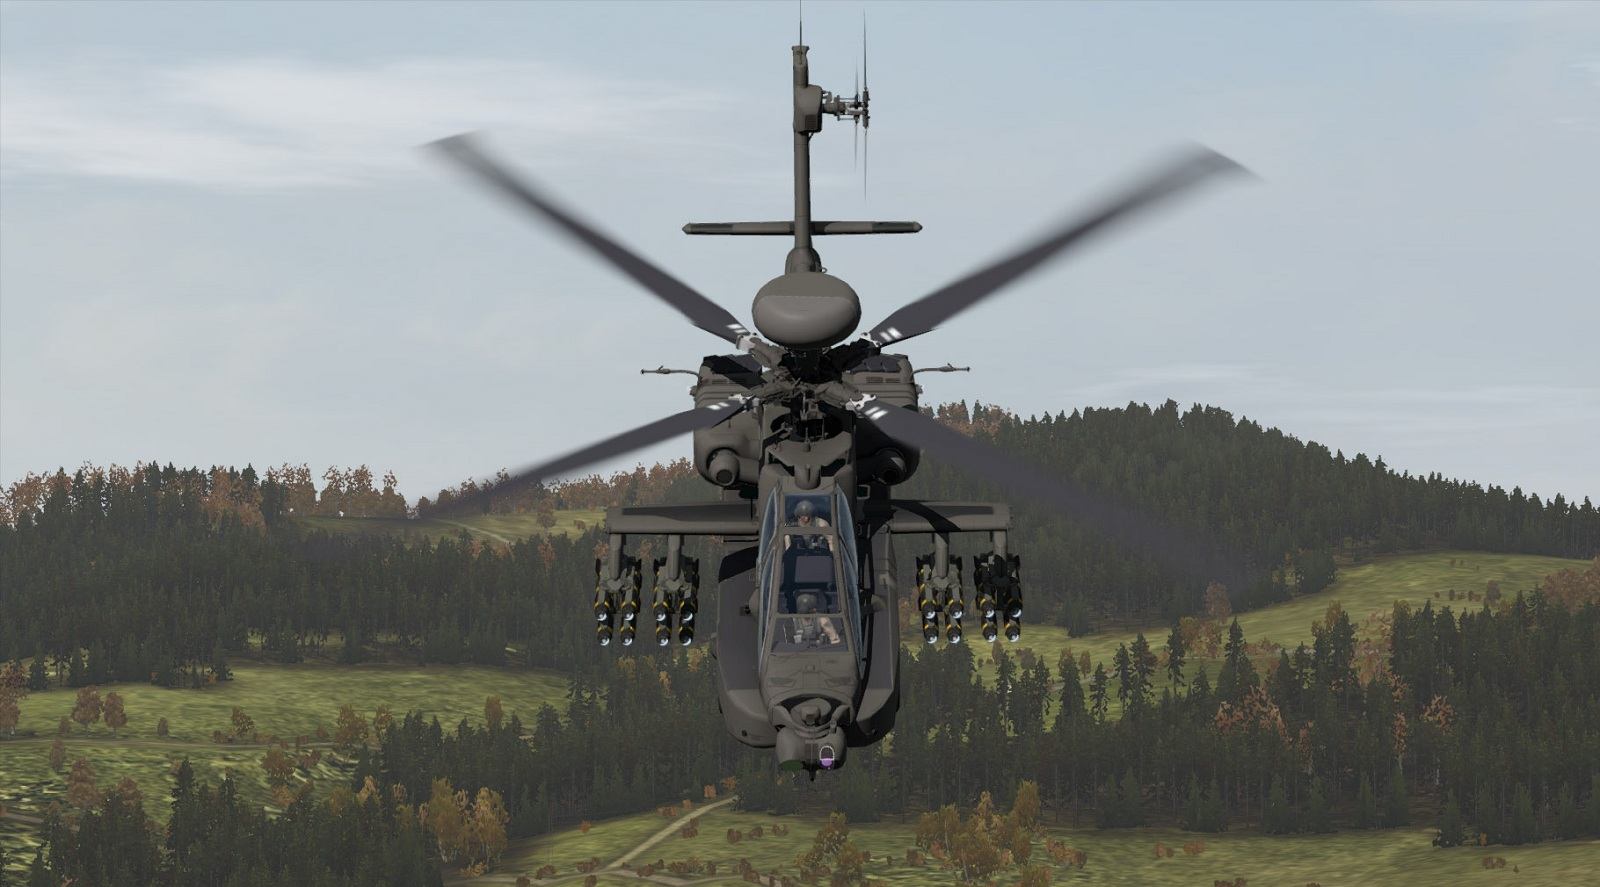 small helicopter cost with India To Buy 22 Attack 15 Heavy Lift on Quadcopter Presentation 63514406 as well Drift likewise Servo Motor S90g as well India To Buy 22 Attack 15 Heavy Lift as well Saudi Arabia Orders Slam Er Jsow.